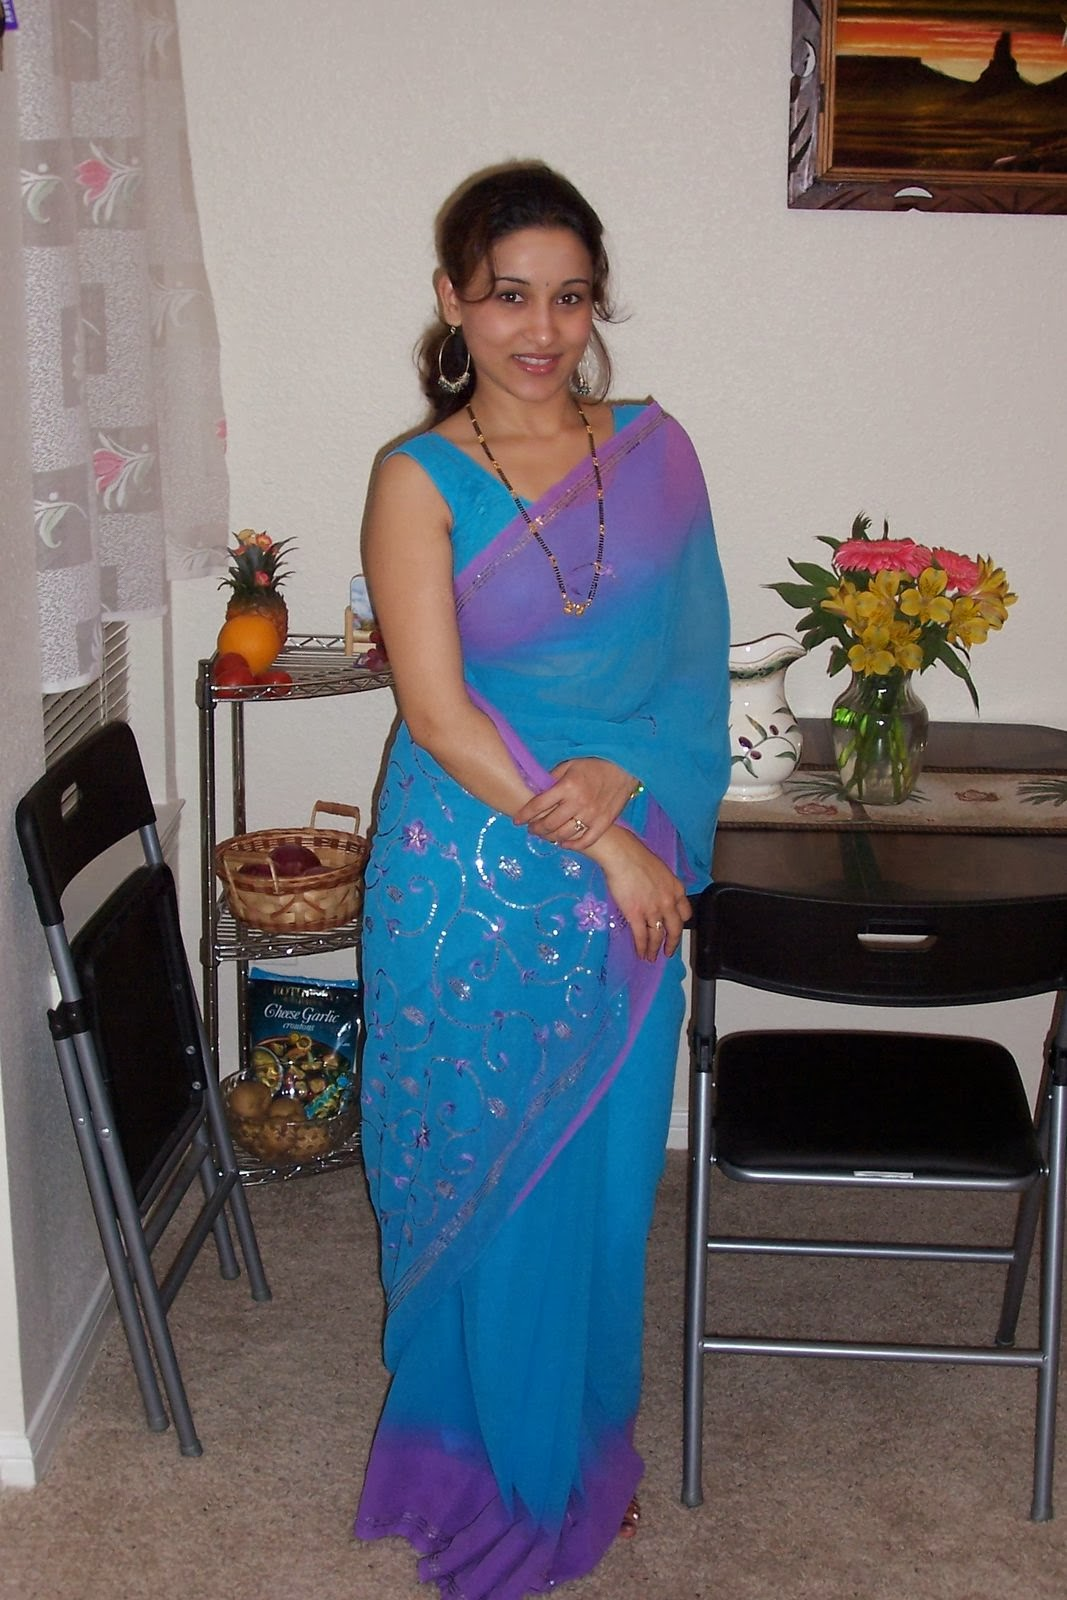 31 Indian Housewives And Girls In Saree  Craziest Photo -4436